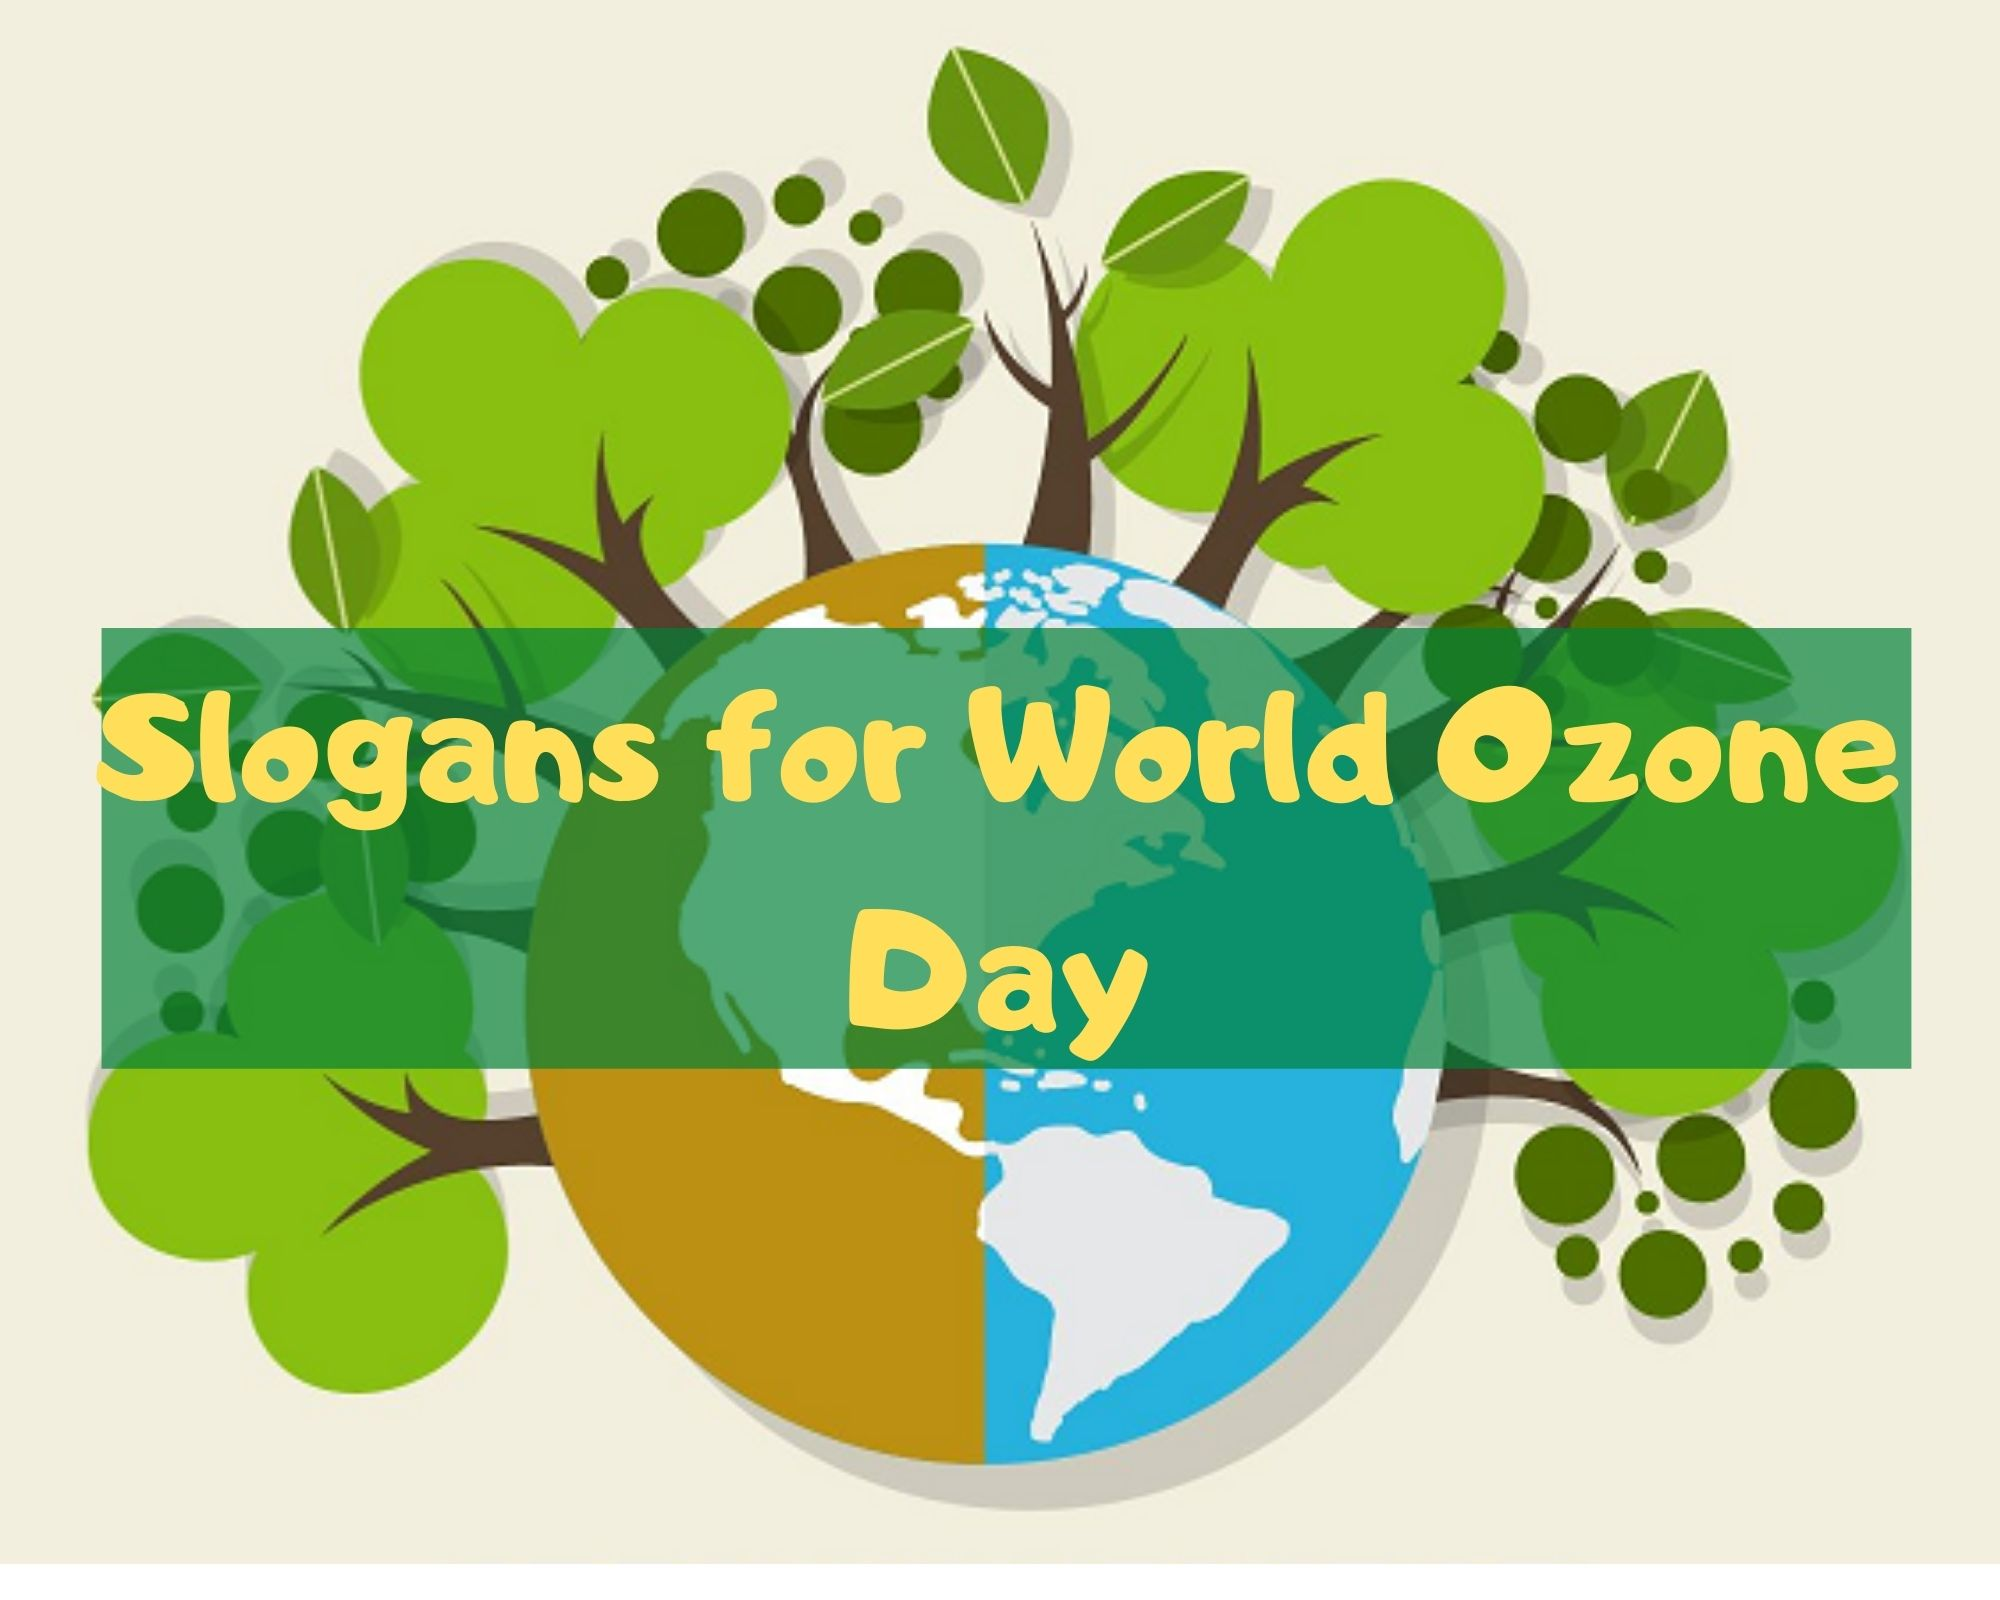 Slogans for World Ozone Day